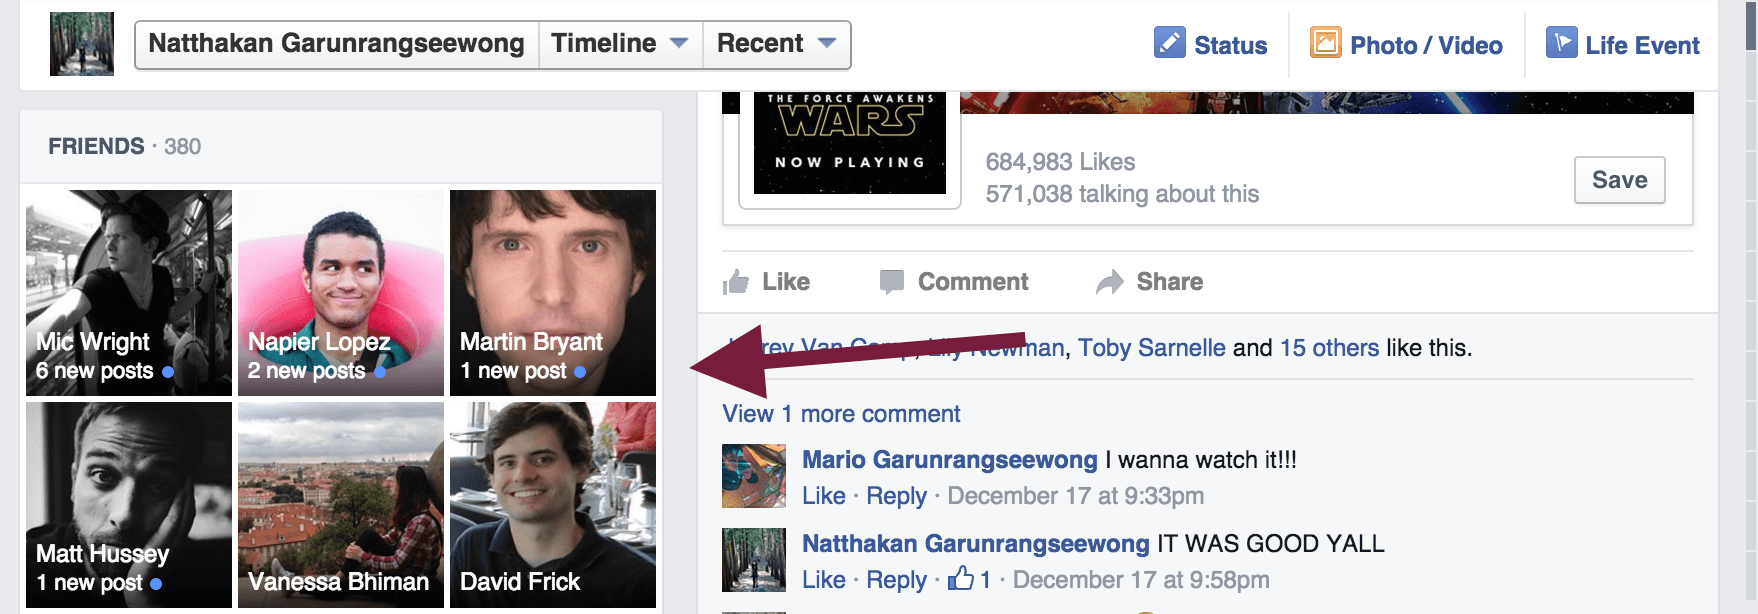 Facebook's New Feature Lets You Know Number Of New Posts By Friends